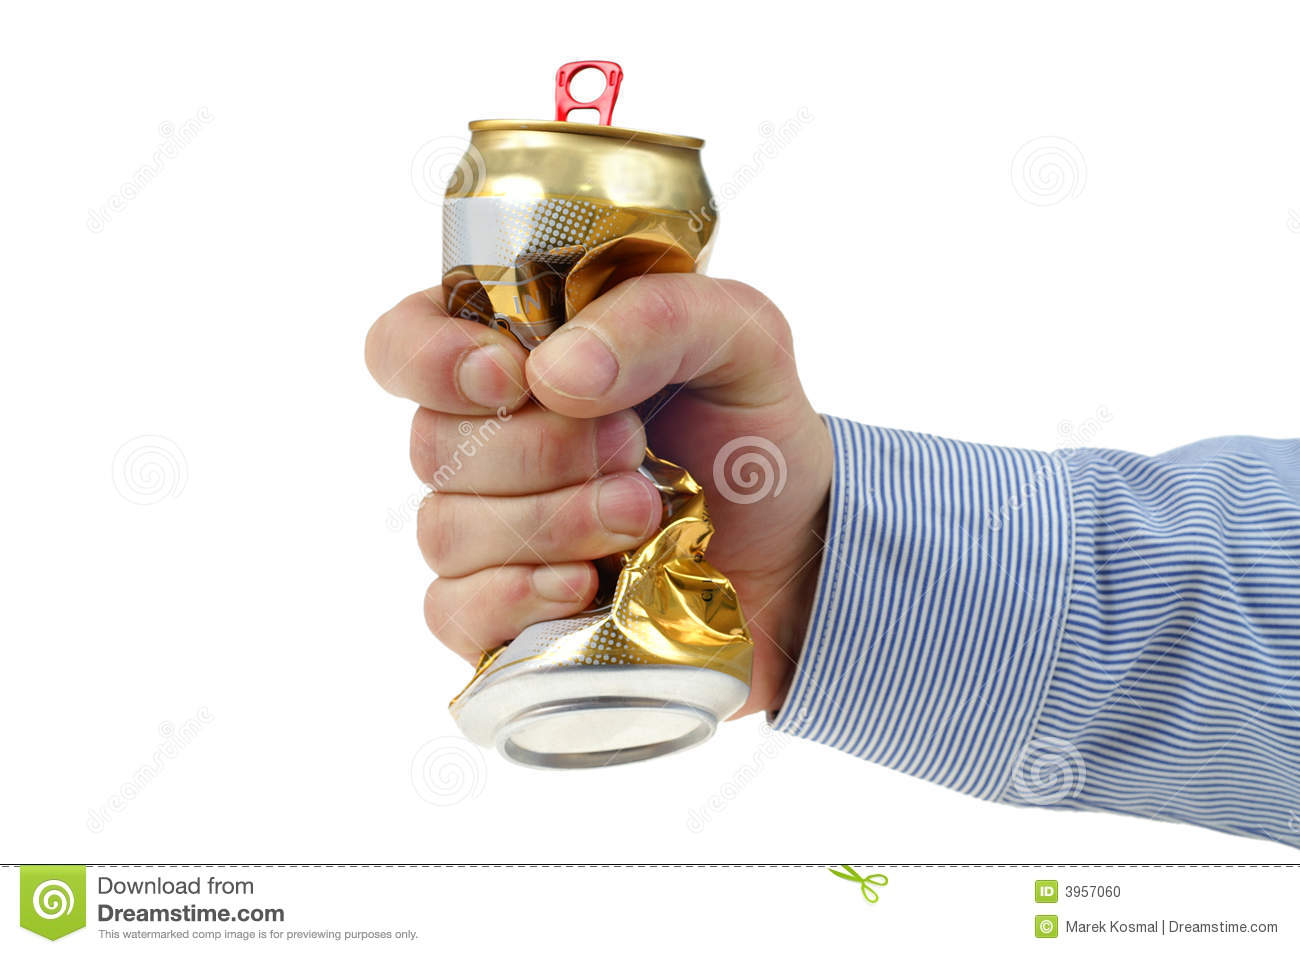 Crushed beer can clipart.